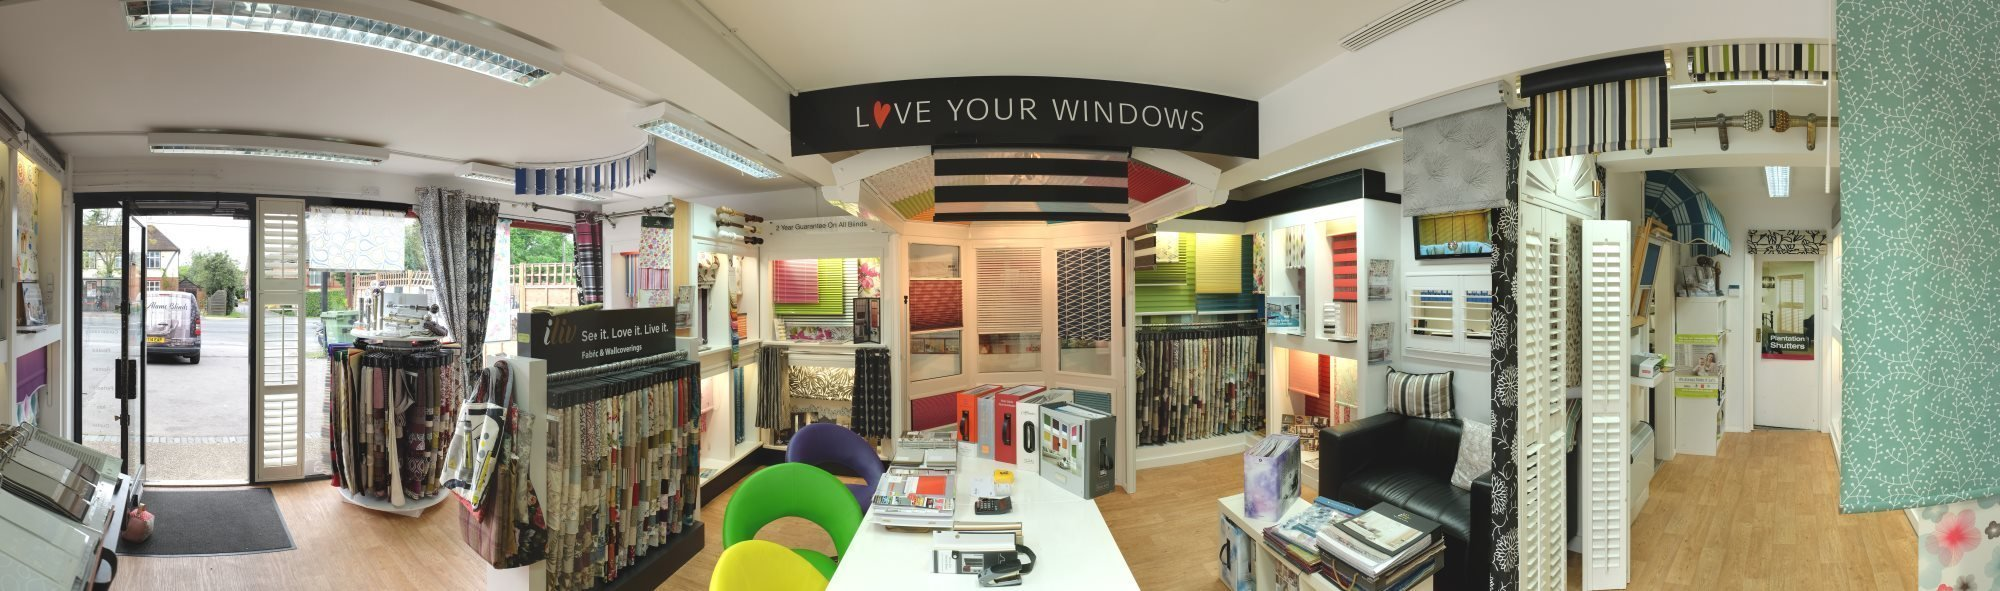 Visit the Largest Blinds Showroom in the Area